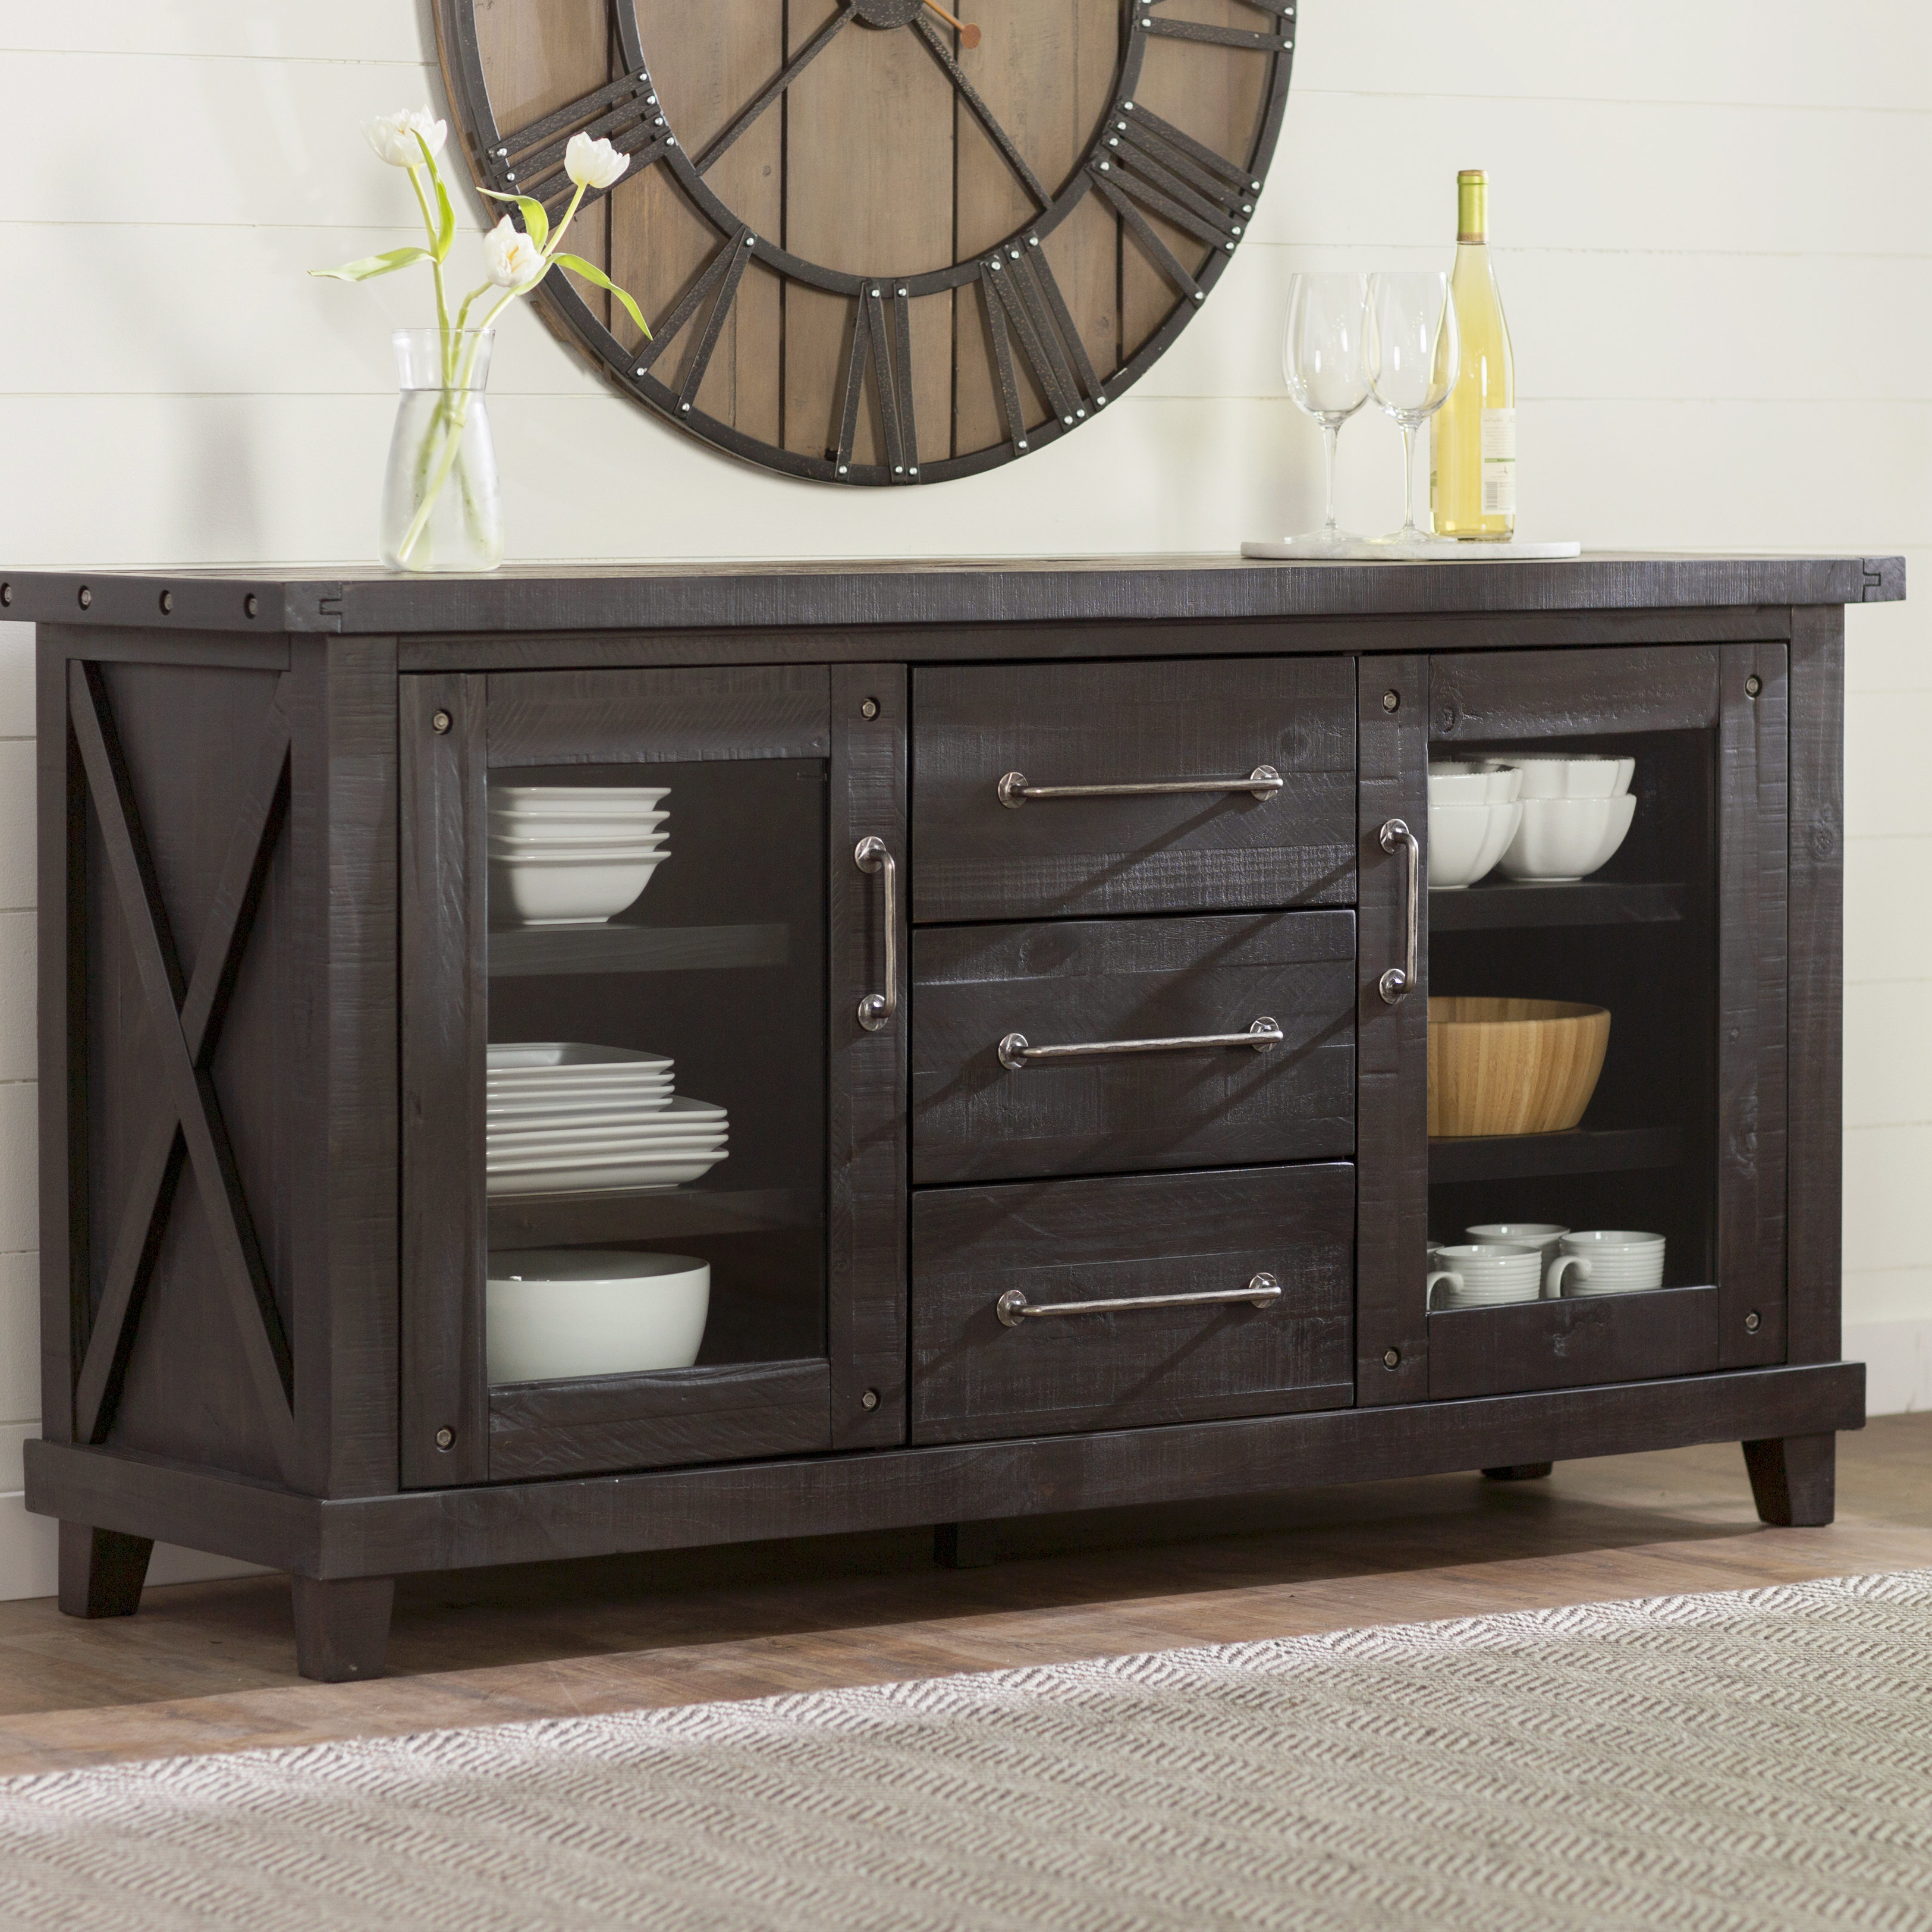 Langsa Sideboard Within Colborne Sideboards (View 14 of 20)